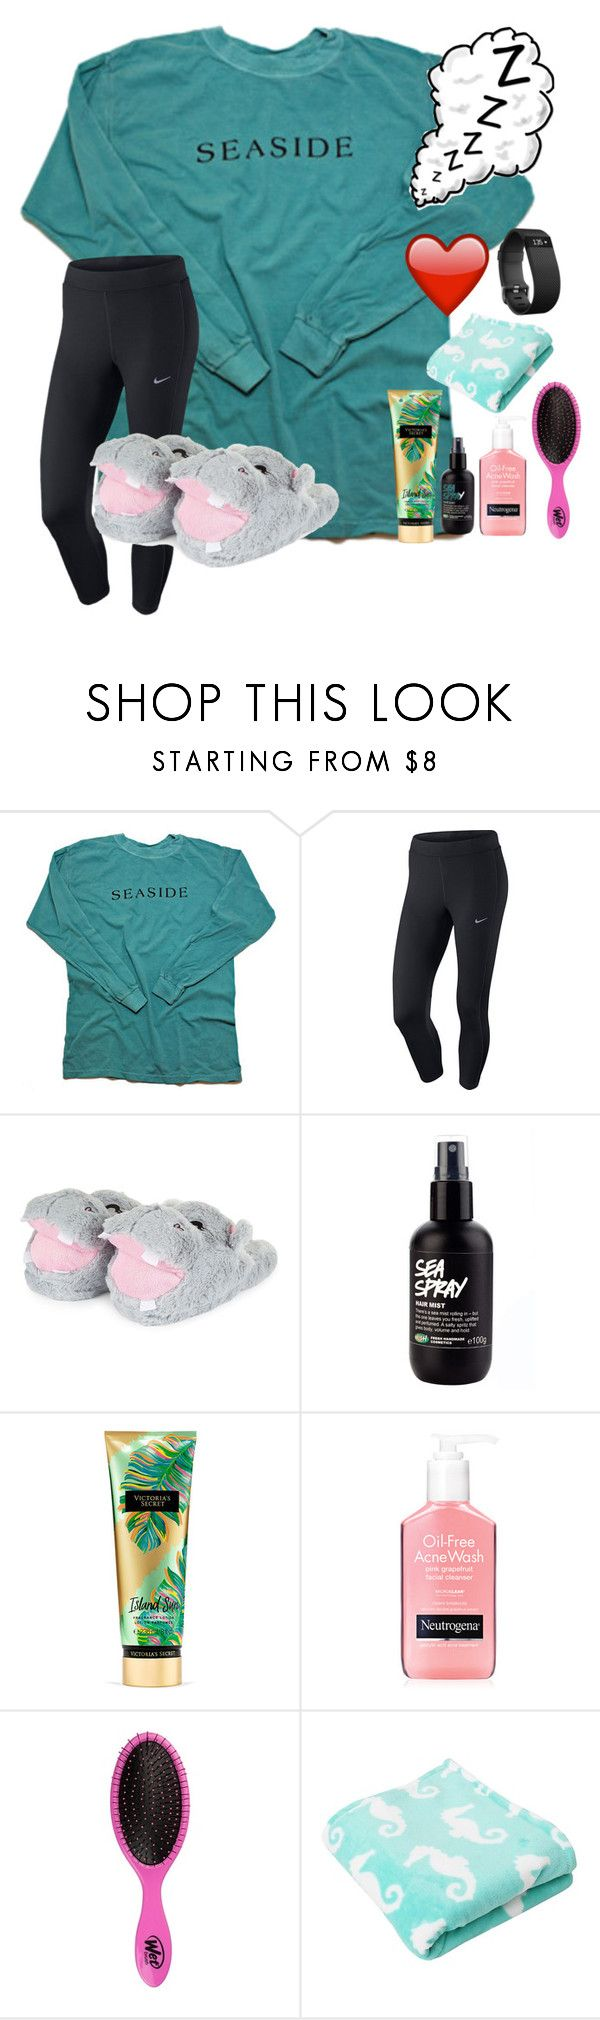 """~😴nighty night😴~"" by taybug2147 ❤ liked on Polyvore featuring NIKE, Victoria's Secret and Fitbit"